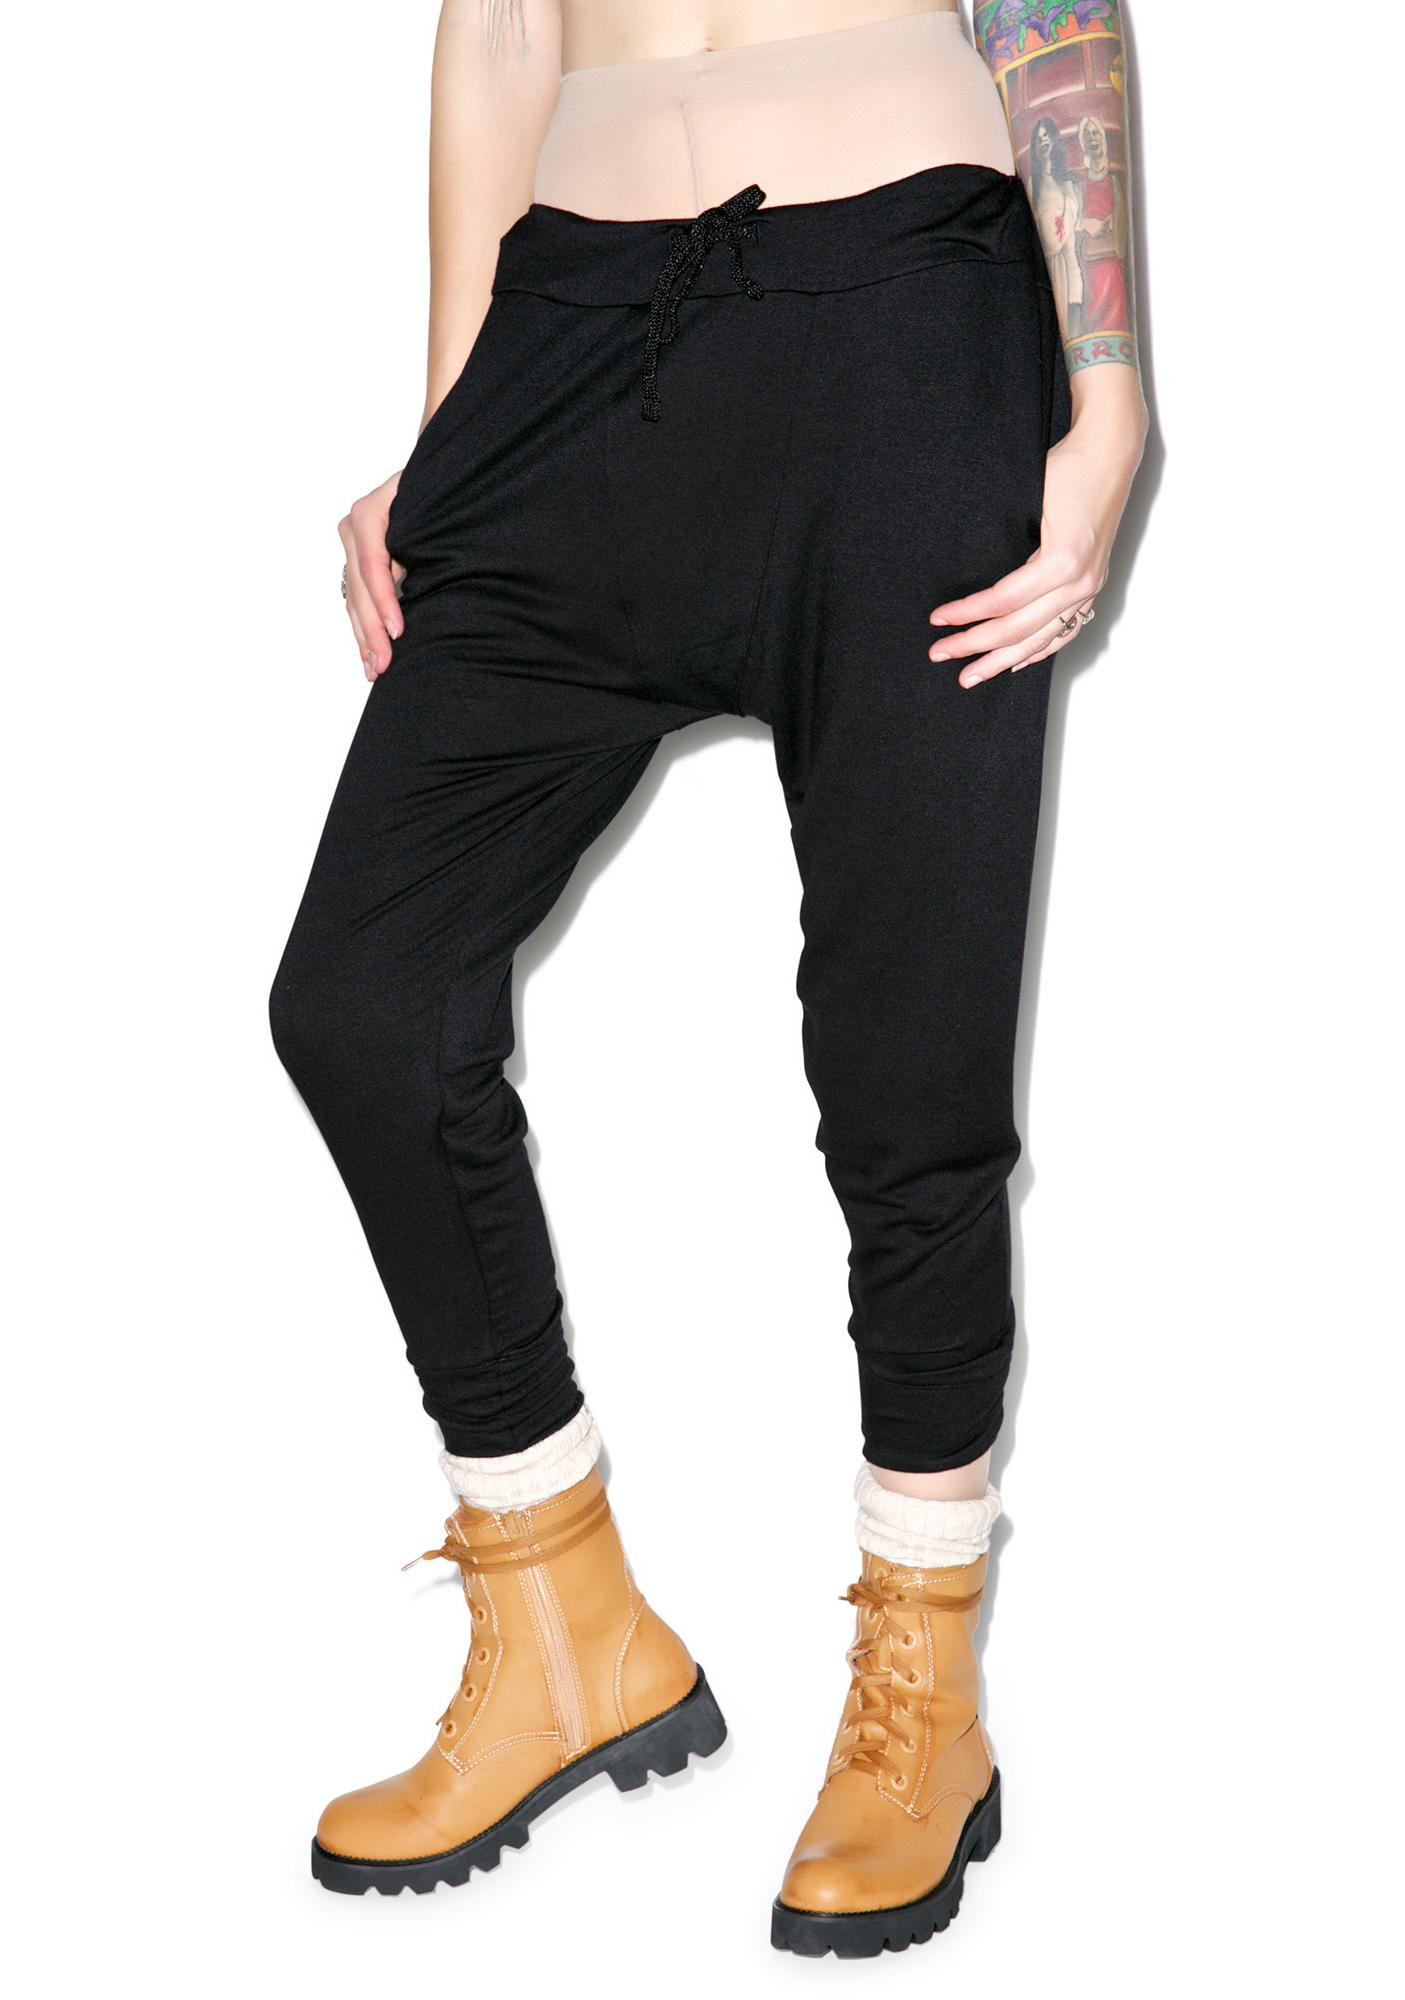 Benjamin Jay Rolling Blackout Drop-Crotch Sweats